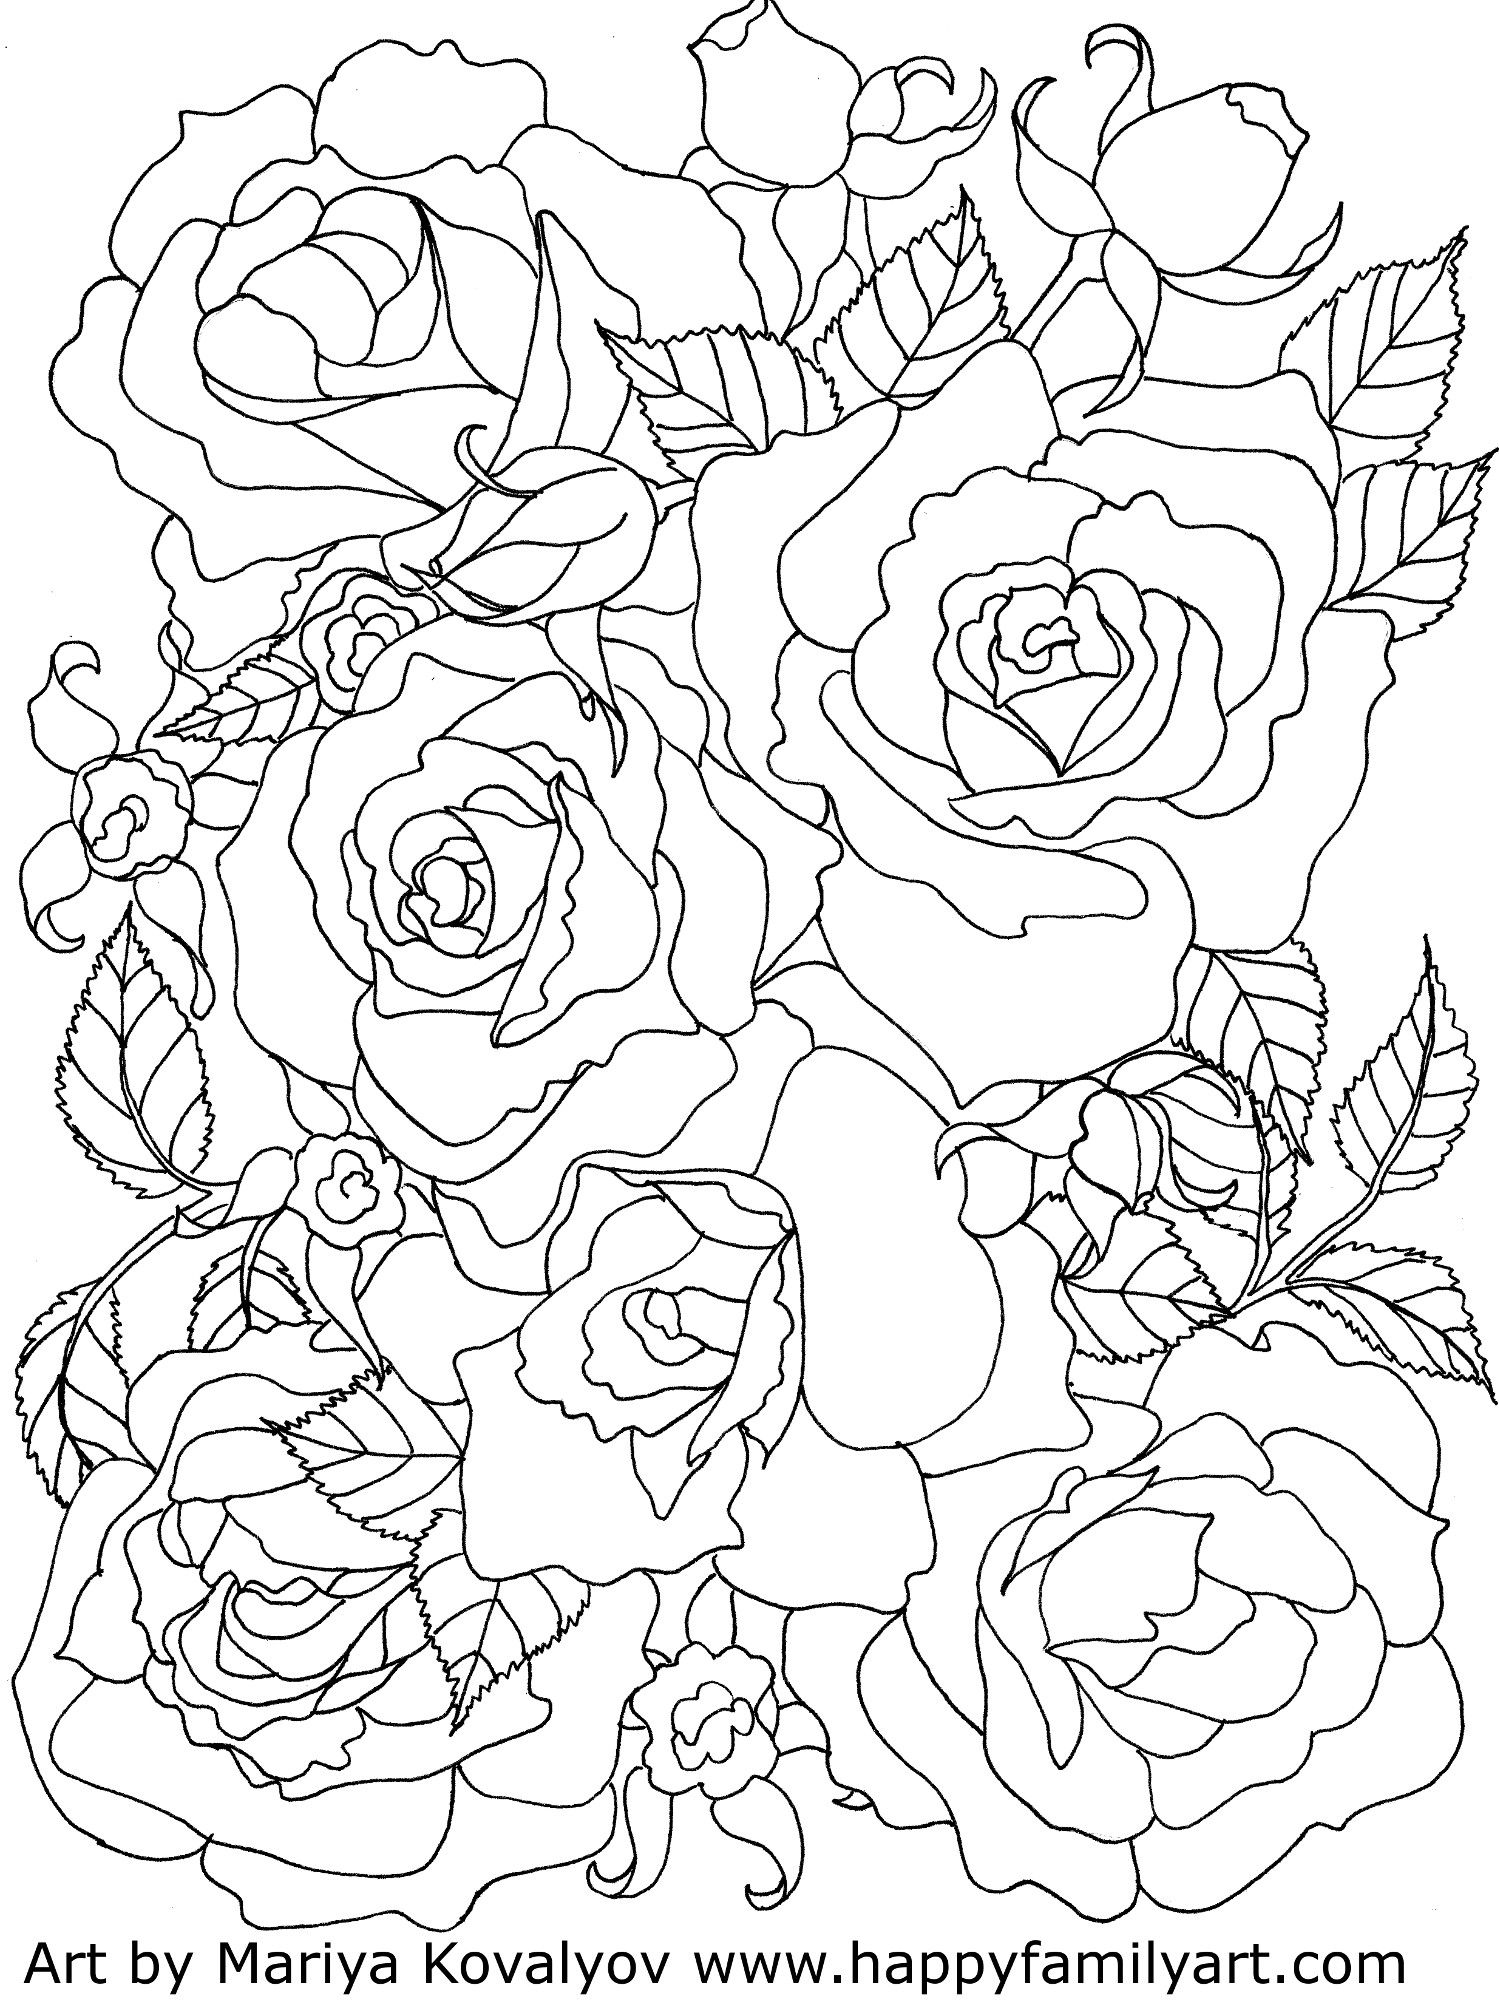 rose coloring pages for adults Roses   | Coloring Pages | Pinterest | Coloring pages, Adult  rose coloring pages for adults